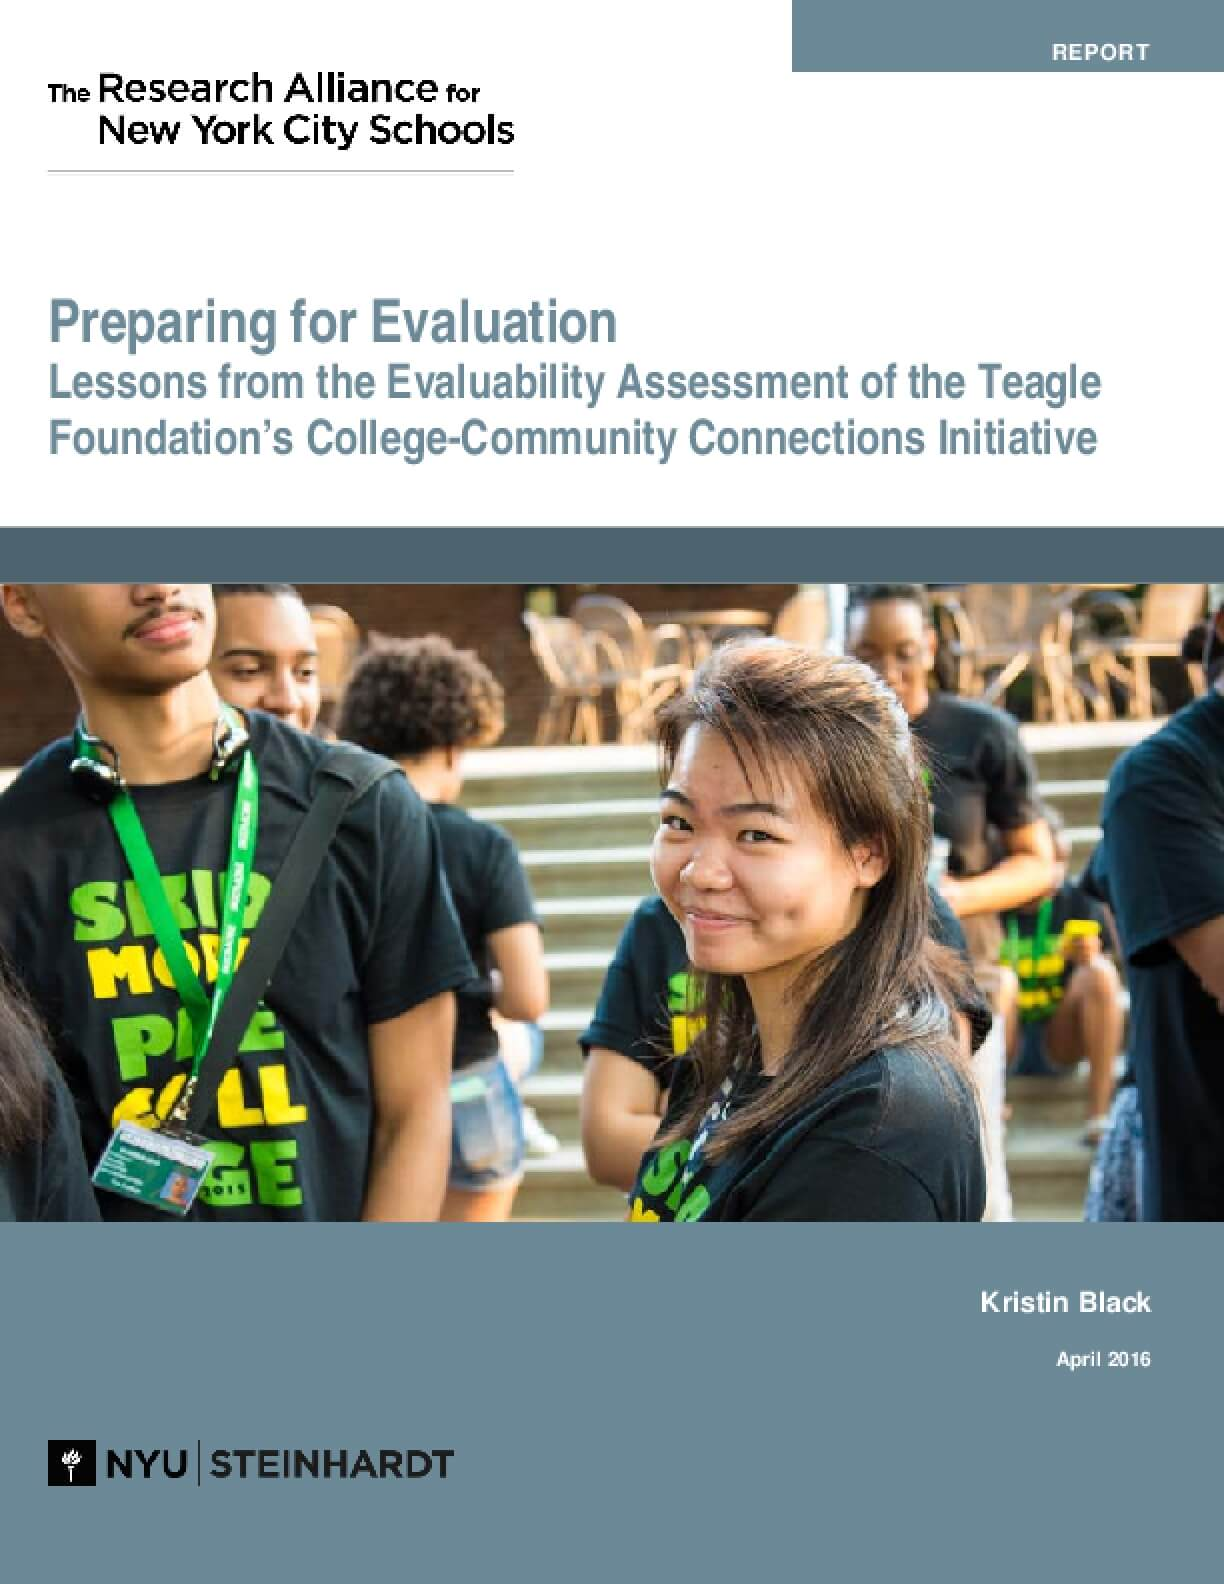 Preparing for Evaluation Lessons from the Evaluability Assessment of the Teagle Foundation's College-Community Connections Initiative